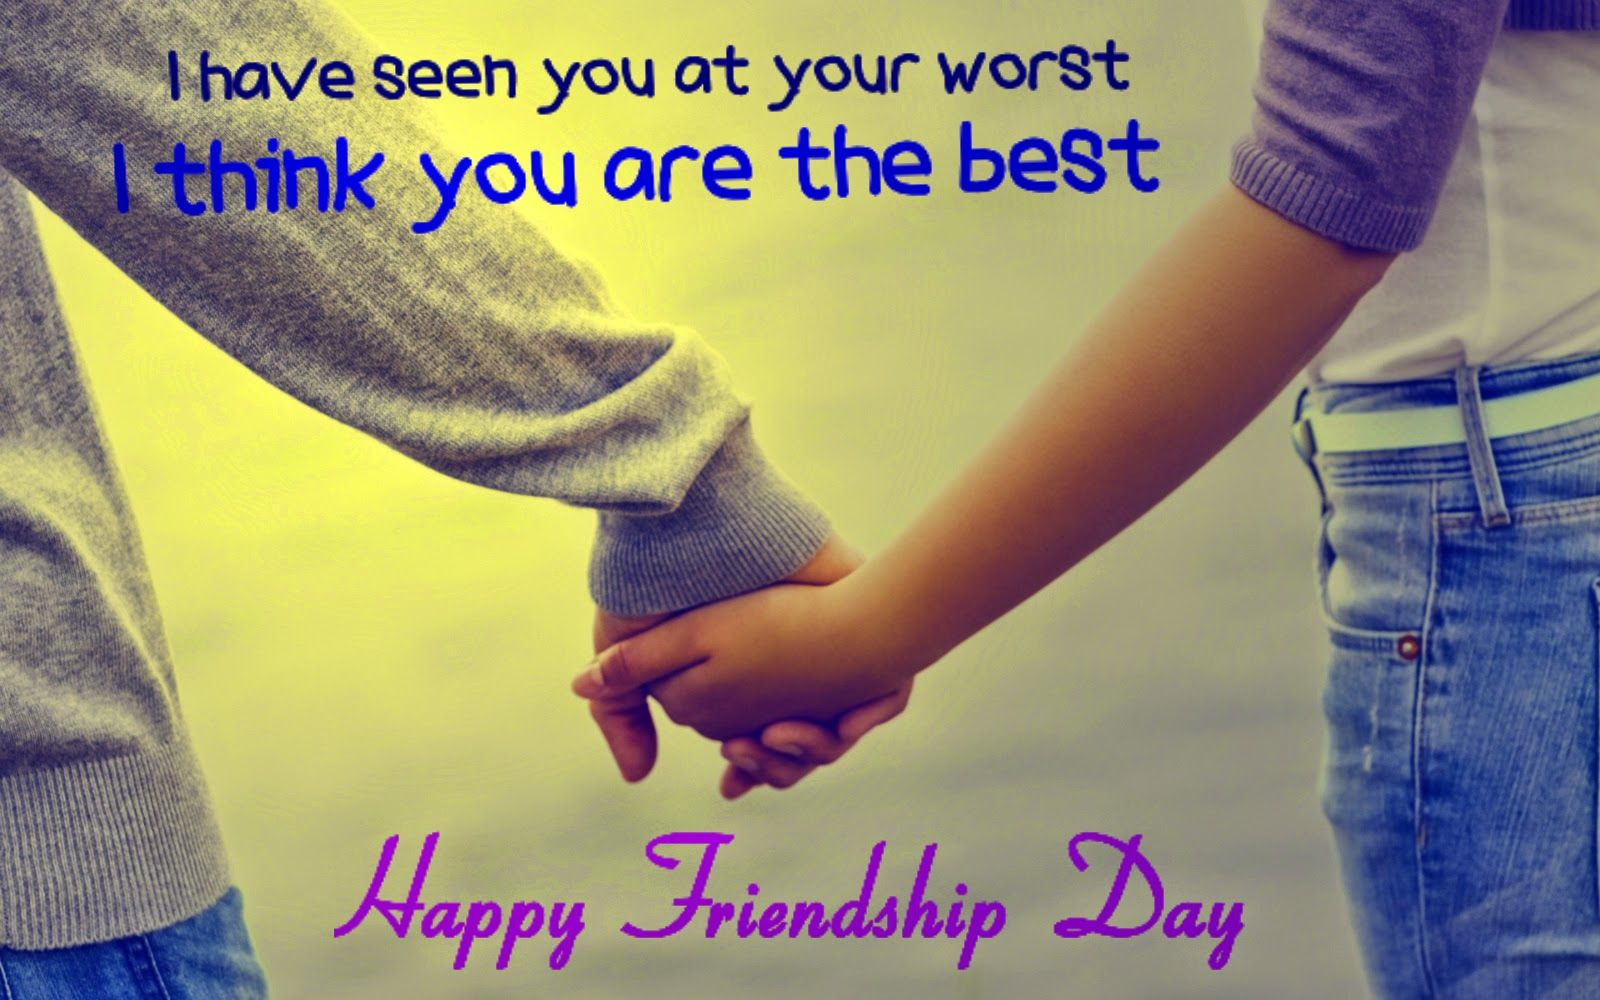 Best Friendship Day Quotes With Images In English : Happy friendship day in india is celebrating on nd